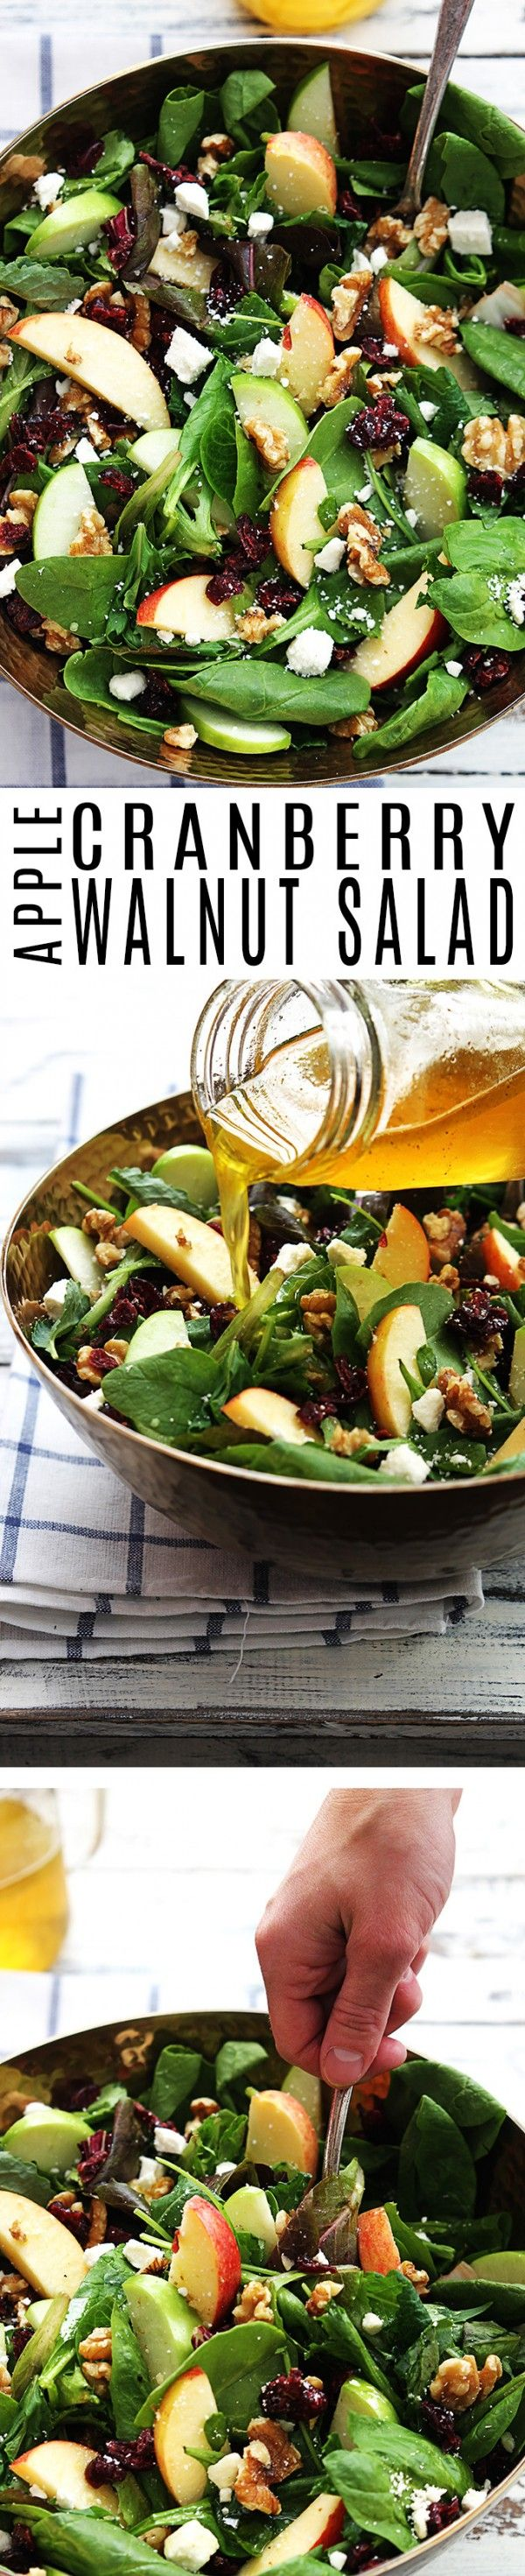 Get the recipe ♥ Apple Cranberry Walnut Salad #besttoeat @recipes_to_go